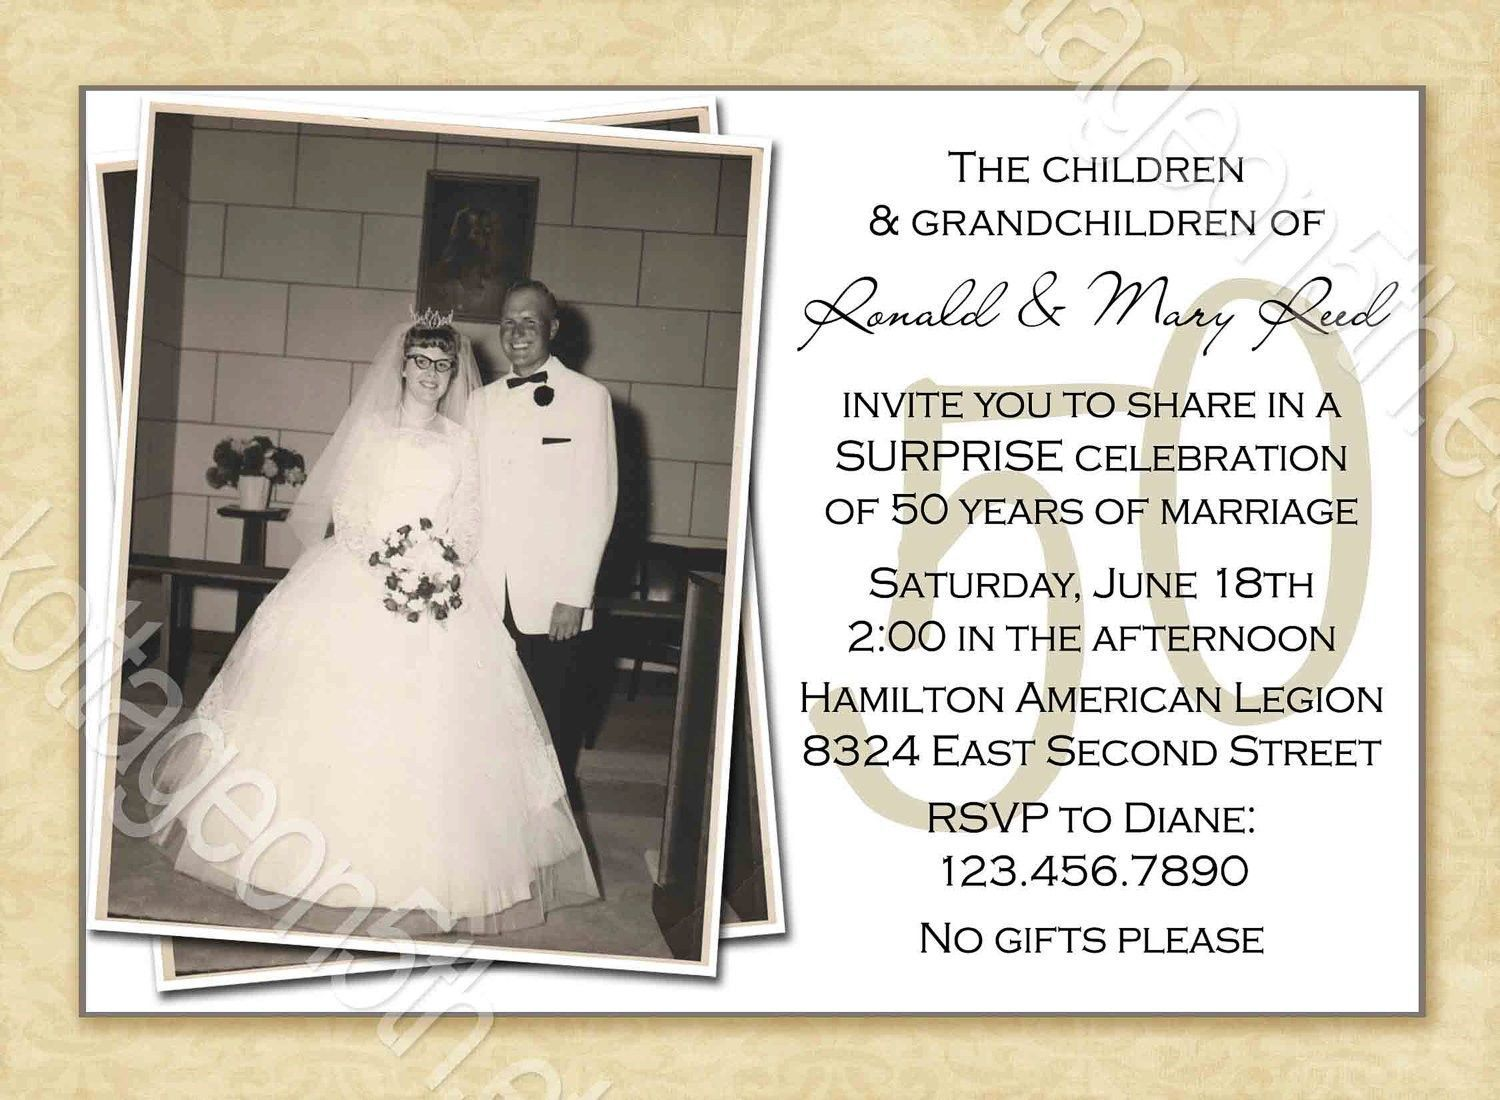 000 Formidable Golden Wedding Anniversary Invitation Template Free Highest Clarity  50th Microsoft Word DownloadFull